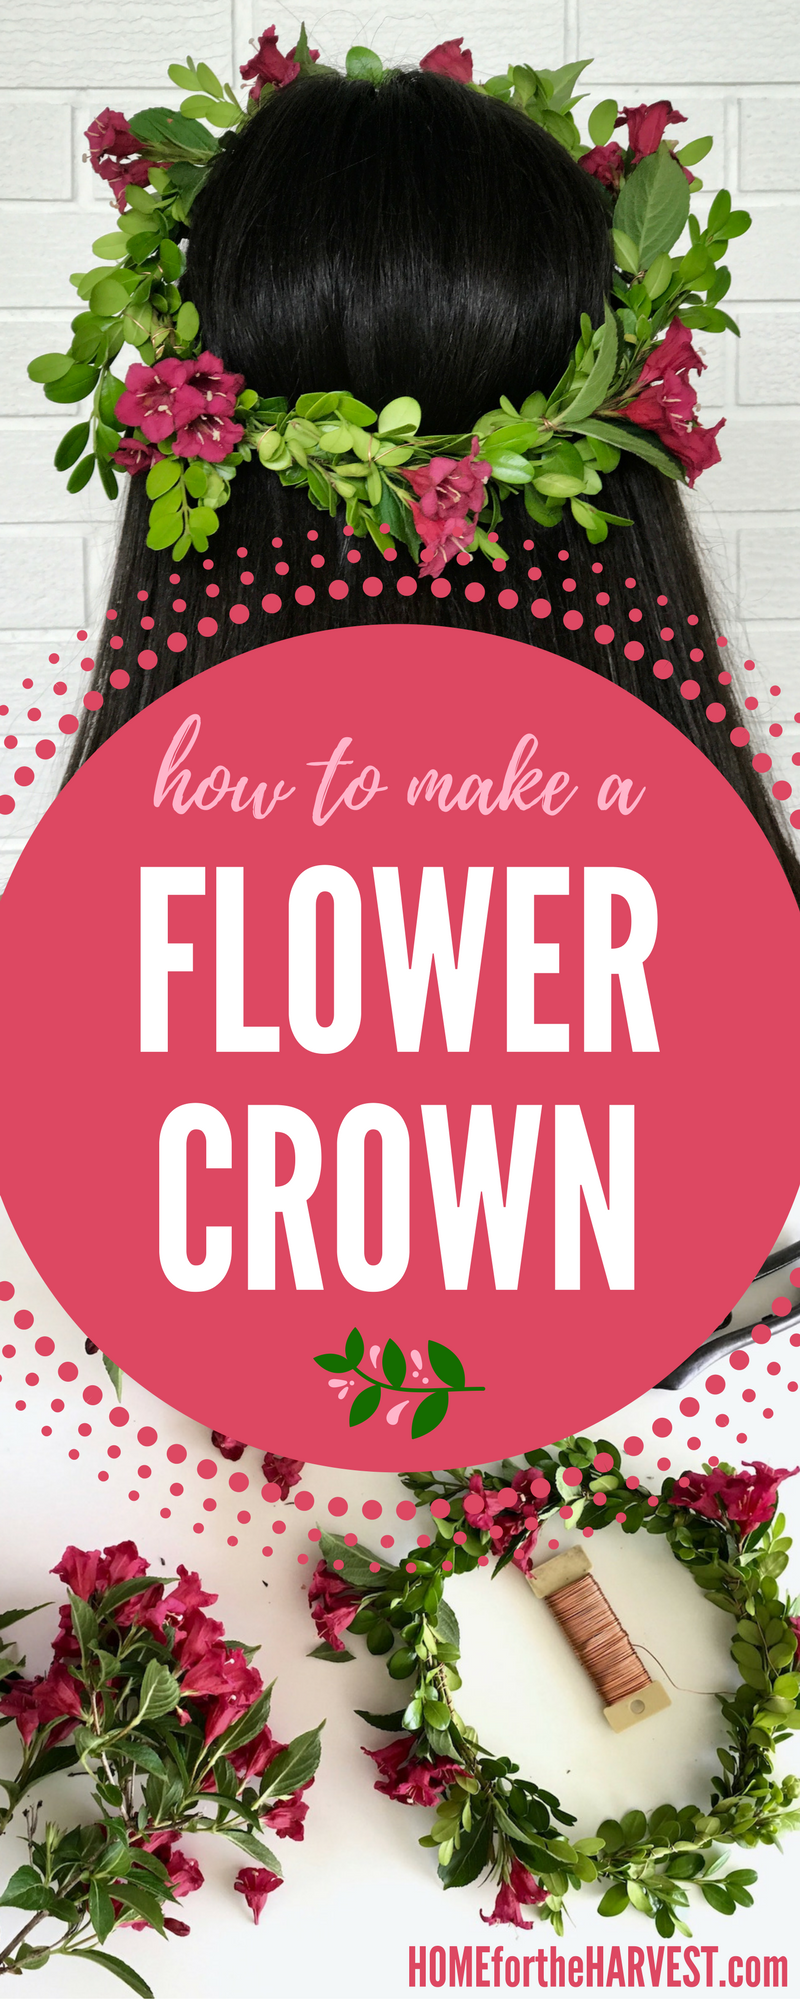 How to make a flower crown with real flowers real flowers diy this diy tutorial shows the exact steps for making your own flower crown from real flowers and greenery home for the harvest izmirmasajfo